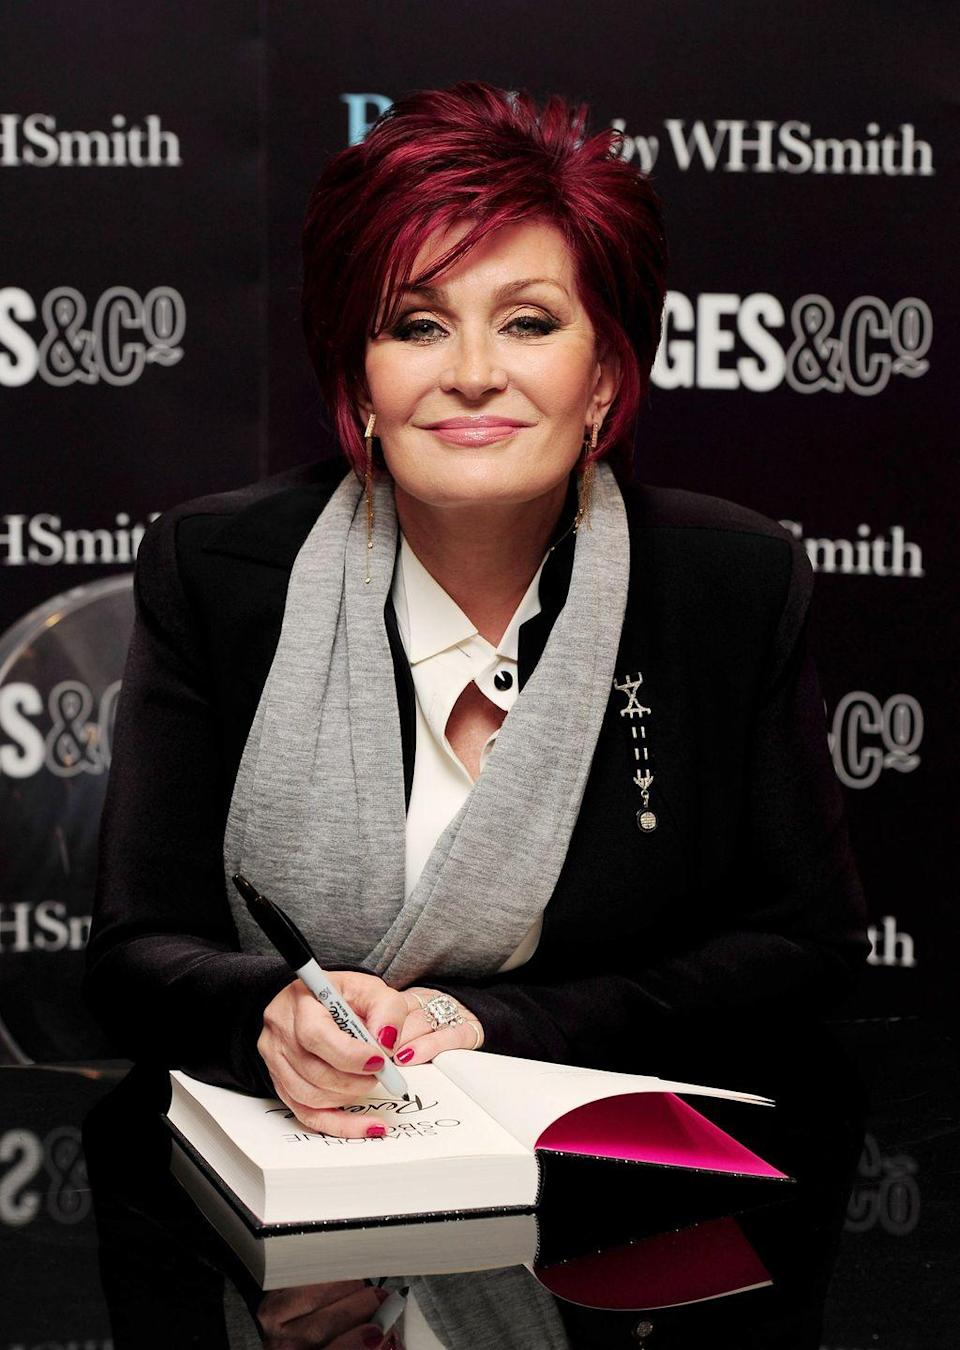 """<p>After two autobiographies, one of which became the best-selling autobiography by a woman since the category started being tracked when it was released, according to the <em><a href=""""https://www.independent.ie/entertainment/books/review-revenge-by-sharon-osbourne-26634059.html"""" rel=""""nofollow noopener"""" target=""""_blank"""" data-ylk=""""slk:Independent"""" class=""""link rapid-noclick-resp"""">Independent</a></em>, Sharon Osbourne turned her attention to fiction. Instead of the expected downfall of a romantic relationship, <em>Revenge</em> tells the story of the competitive dynamic between two sisters who fight over men and fame and have a lot of sex along the way. </p><p>If you're looking for some salacious drama, look no further. </p><p><a class=""""link rapid-noclick-resp"""" href=""""https://www.amazon.com/Revenge-Sharon-Osbourne/dp/0751542334?tag=syn-yahoo-20&ascsubtag=%5Bartid%7C2140.g.33987725%5Bsrc%7Cyahoo-us"""" rel=""""nofollow noopener"""" target=""""_blank"""" data-ylk=""""slk:Buy the Book"""">Buy the Book</a></p>"""